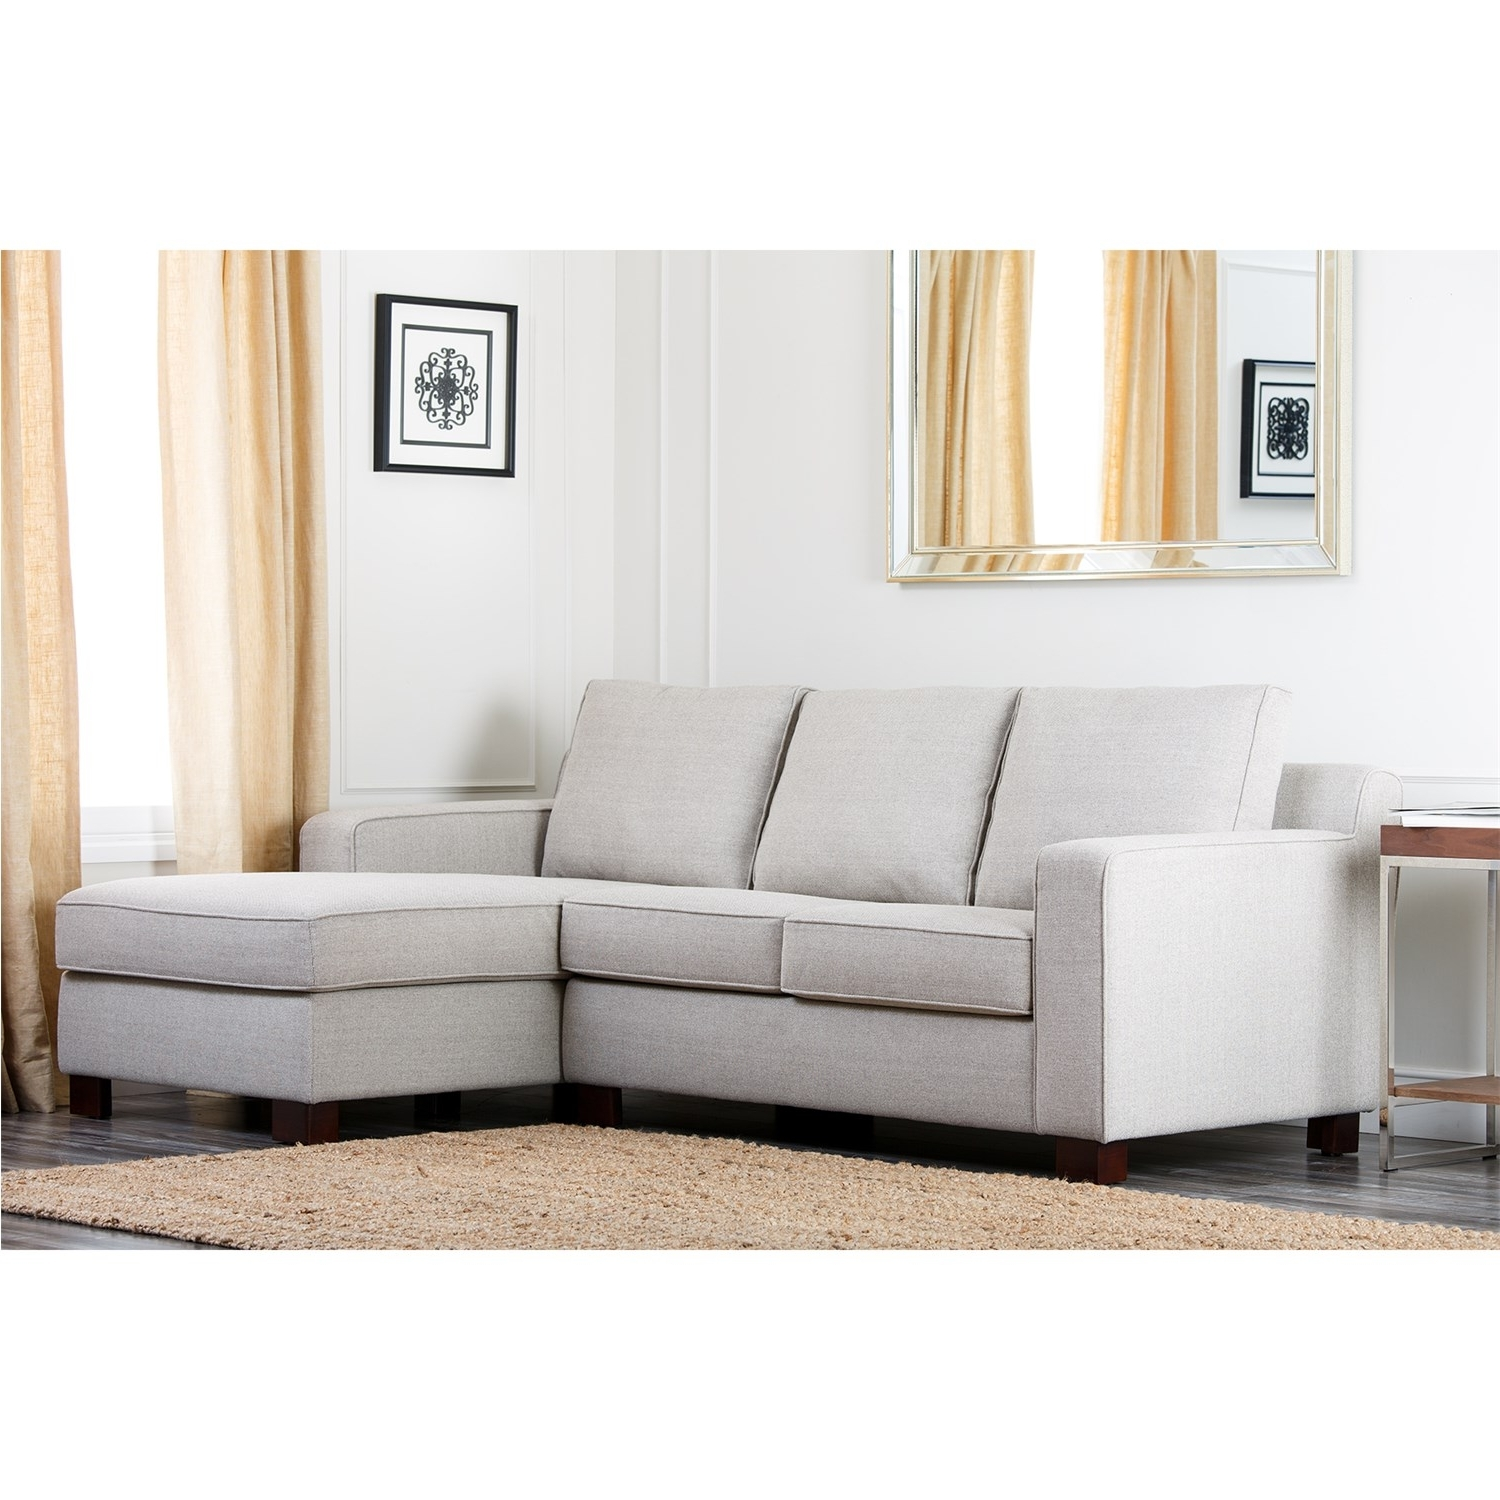 Regina Sectional Sofas For Most Recent Abbyson Living Rl 1321 Gry Regina Grey Fabric Sectional Sofa (View 10 of 20)